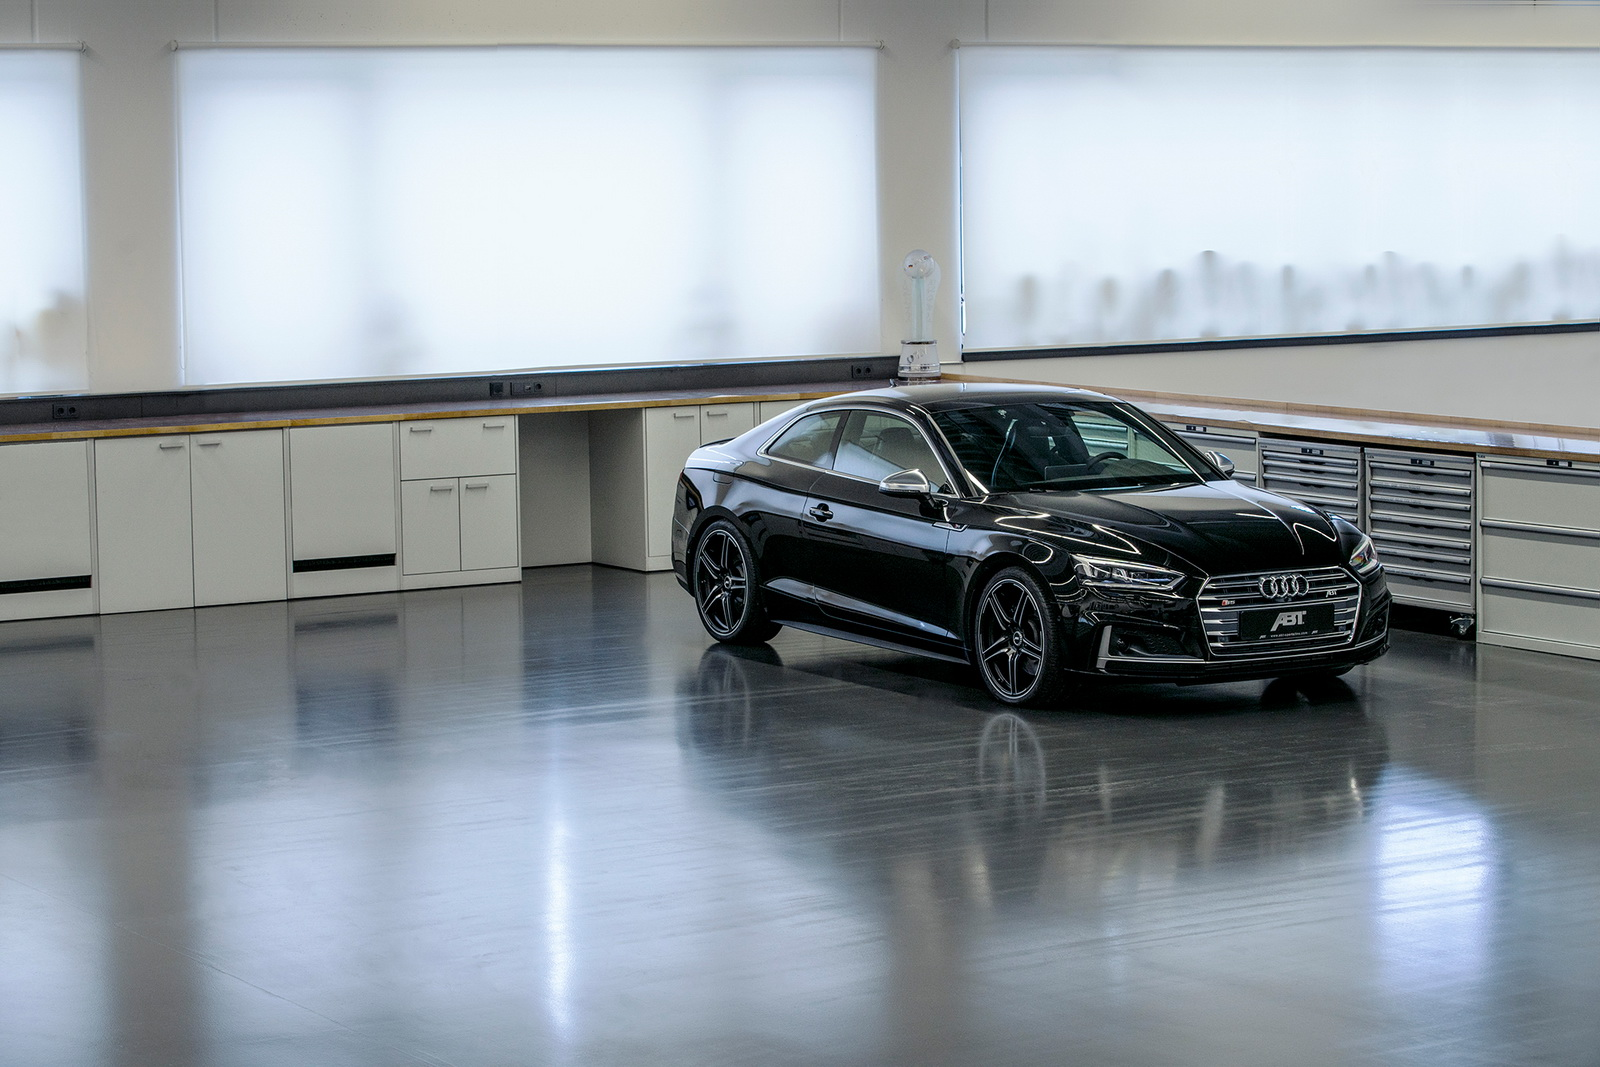 ABT S5 Coupe by ABT (3)